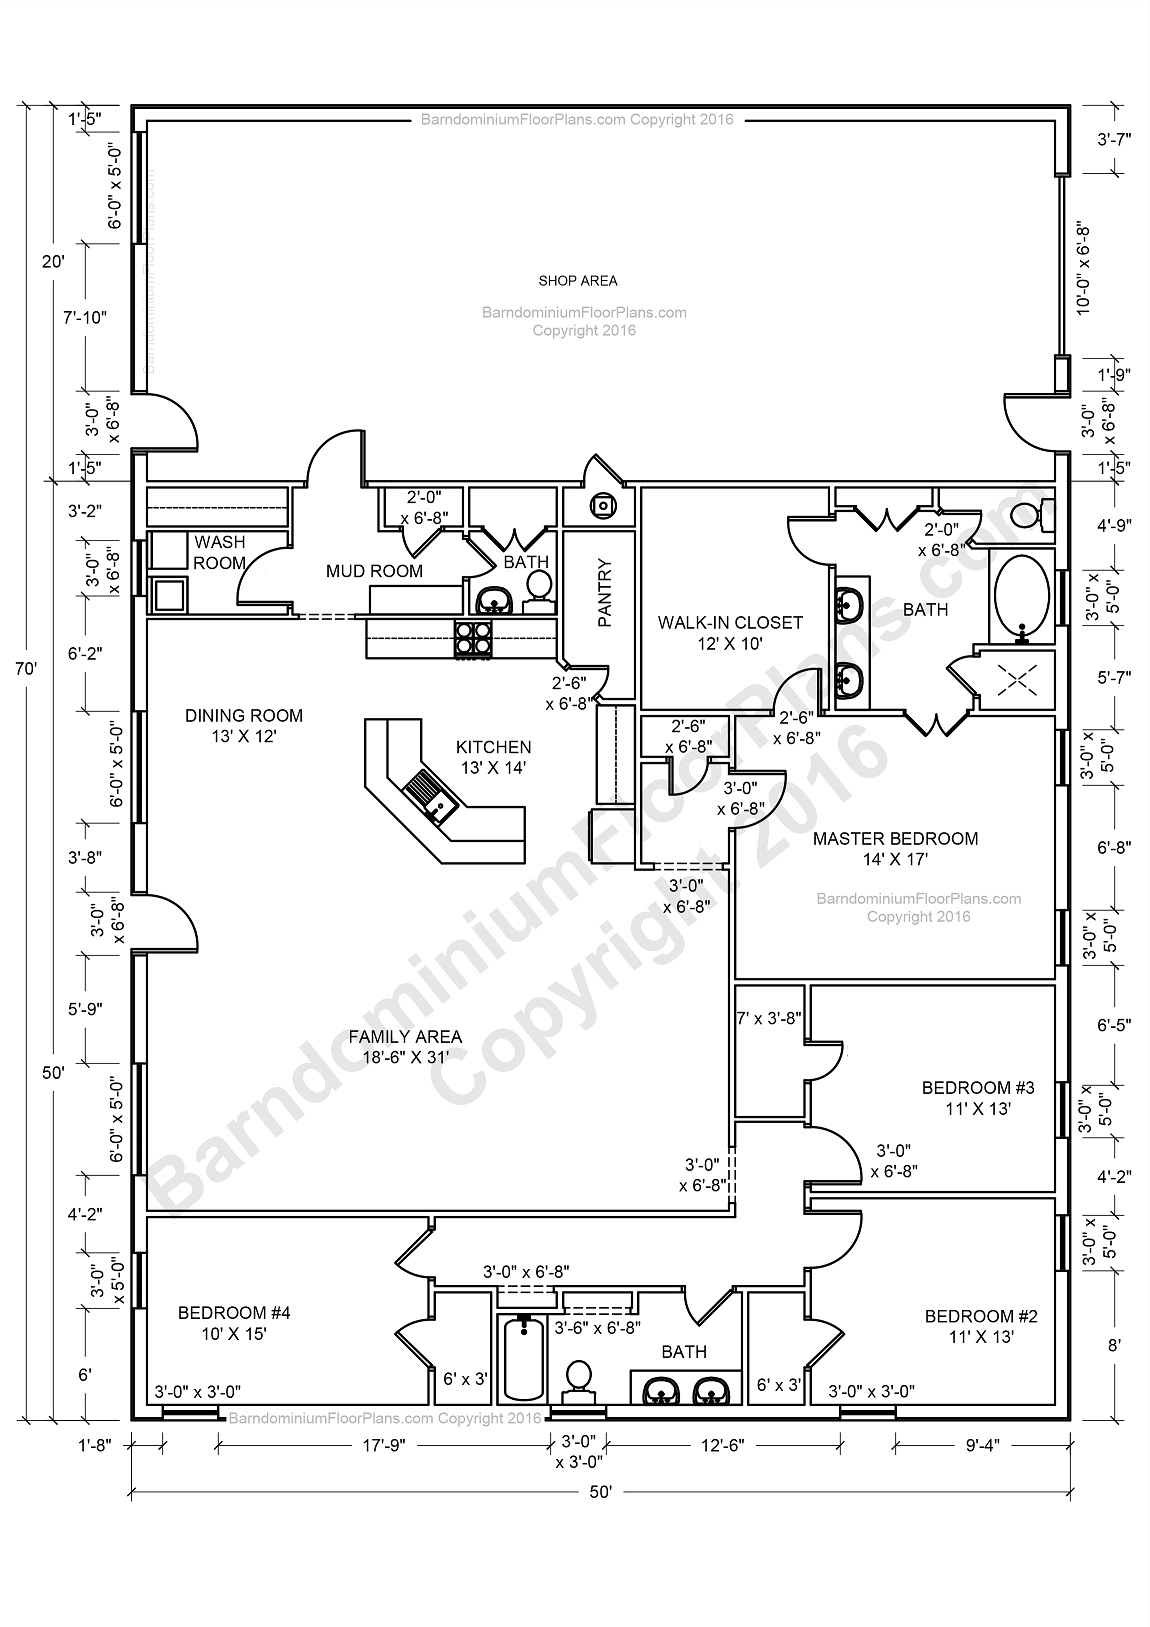 Barndominium floor plans barndominium floor plans 1 800 Building house plans